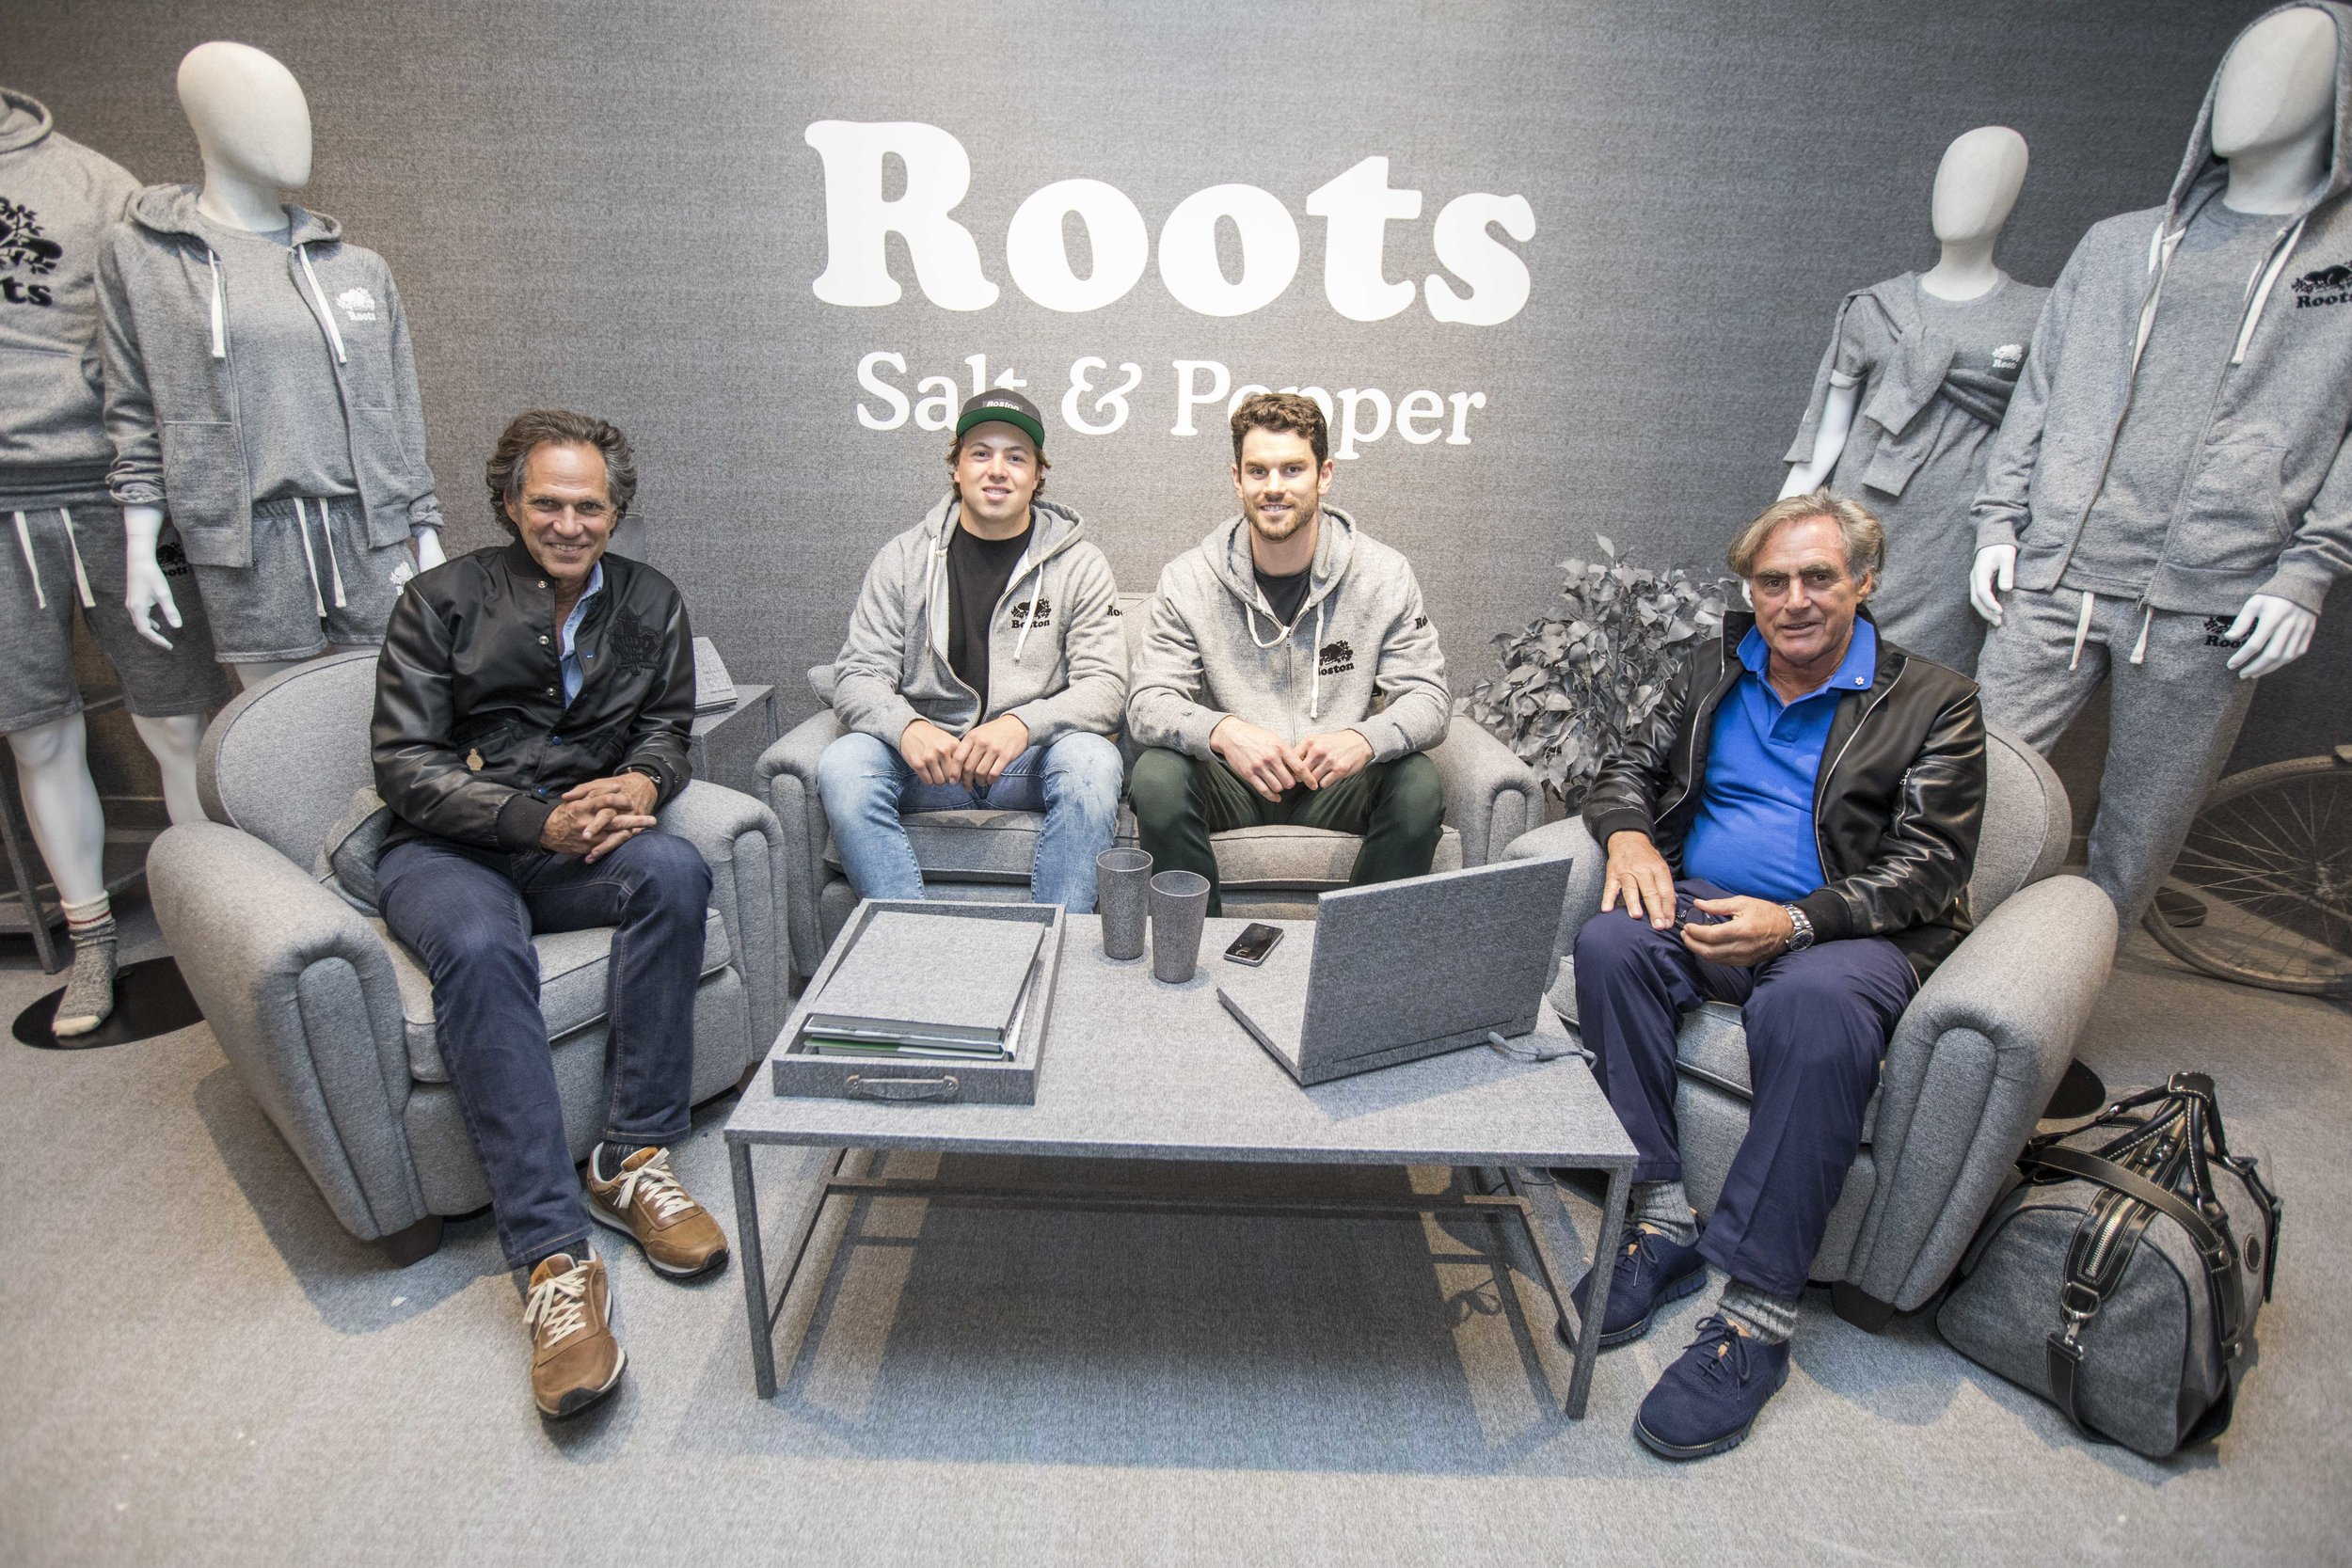 Roots Co-Founders, Don Green (far left) and Michael Budman (far right), with Boston Bruins players Charlie McAvoy and Adam McQuaid.